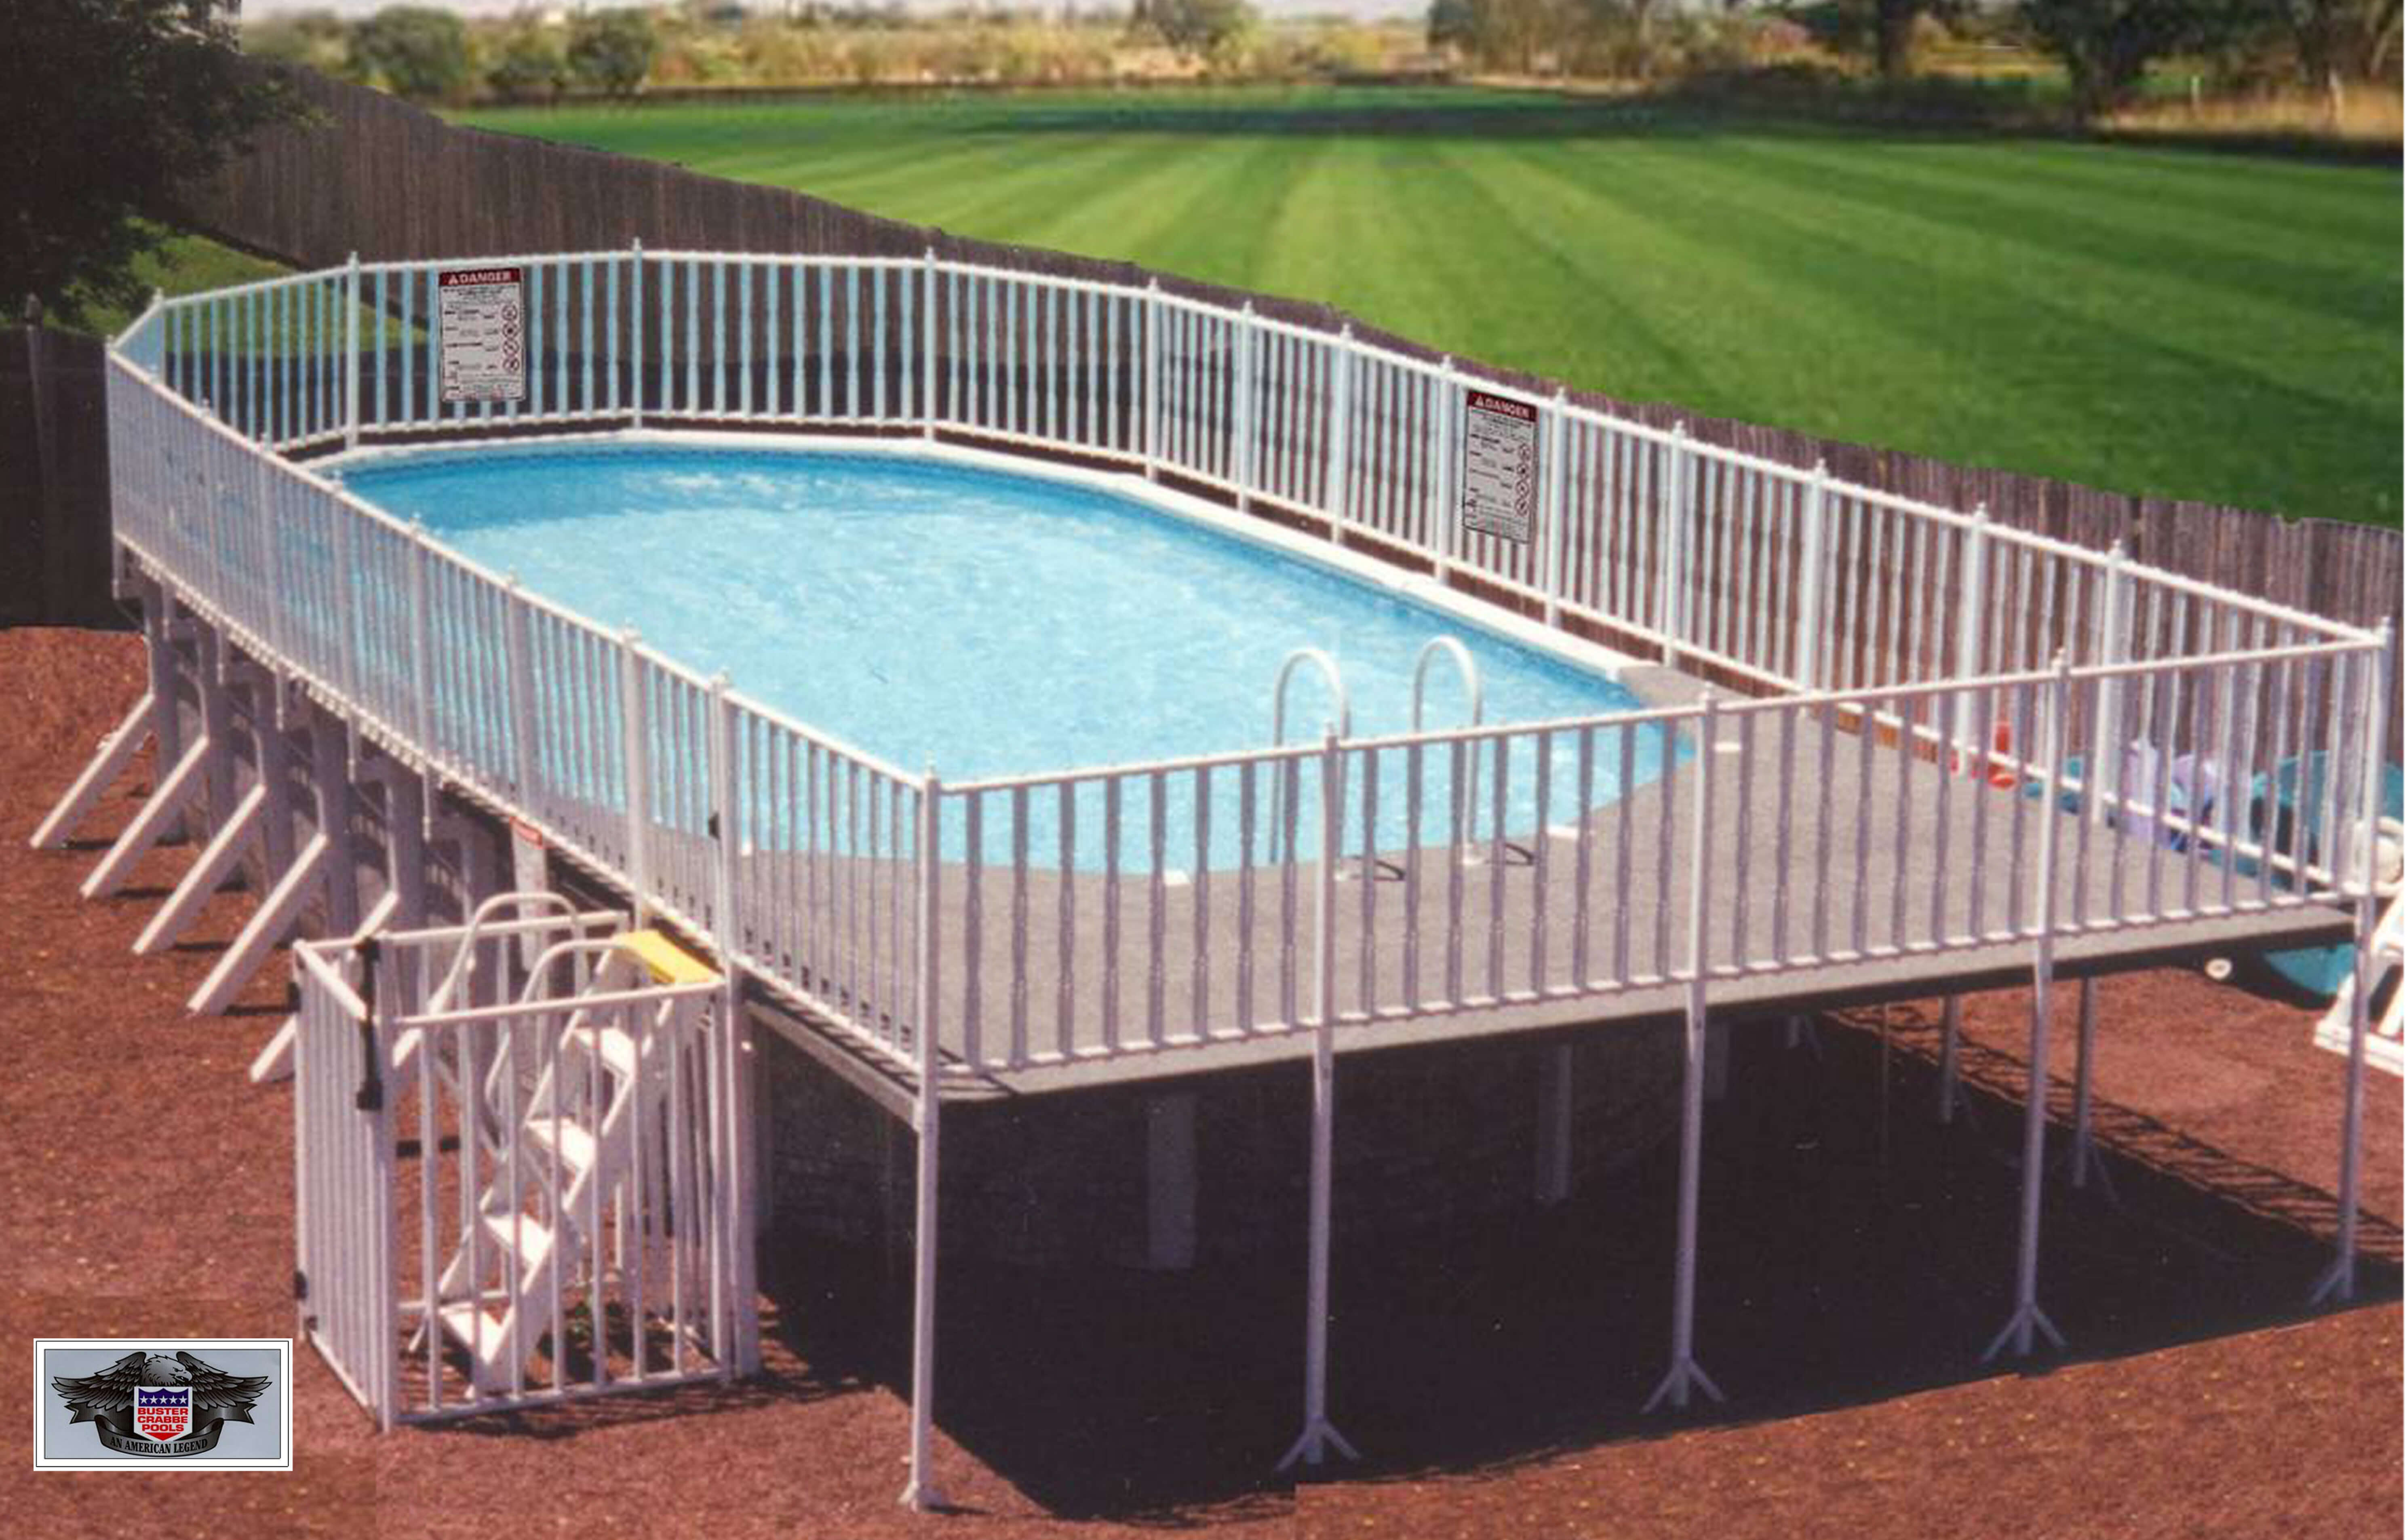 buster crabbe pool - american swimming pool manufacturer - about